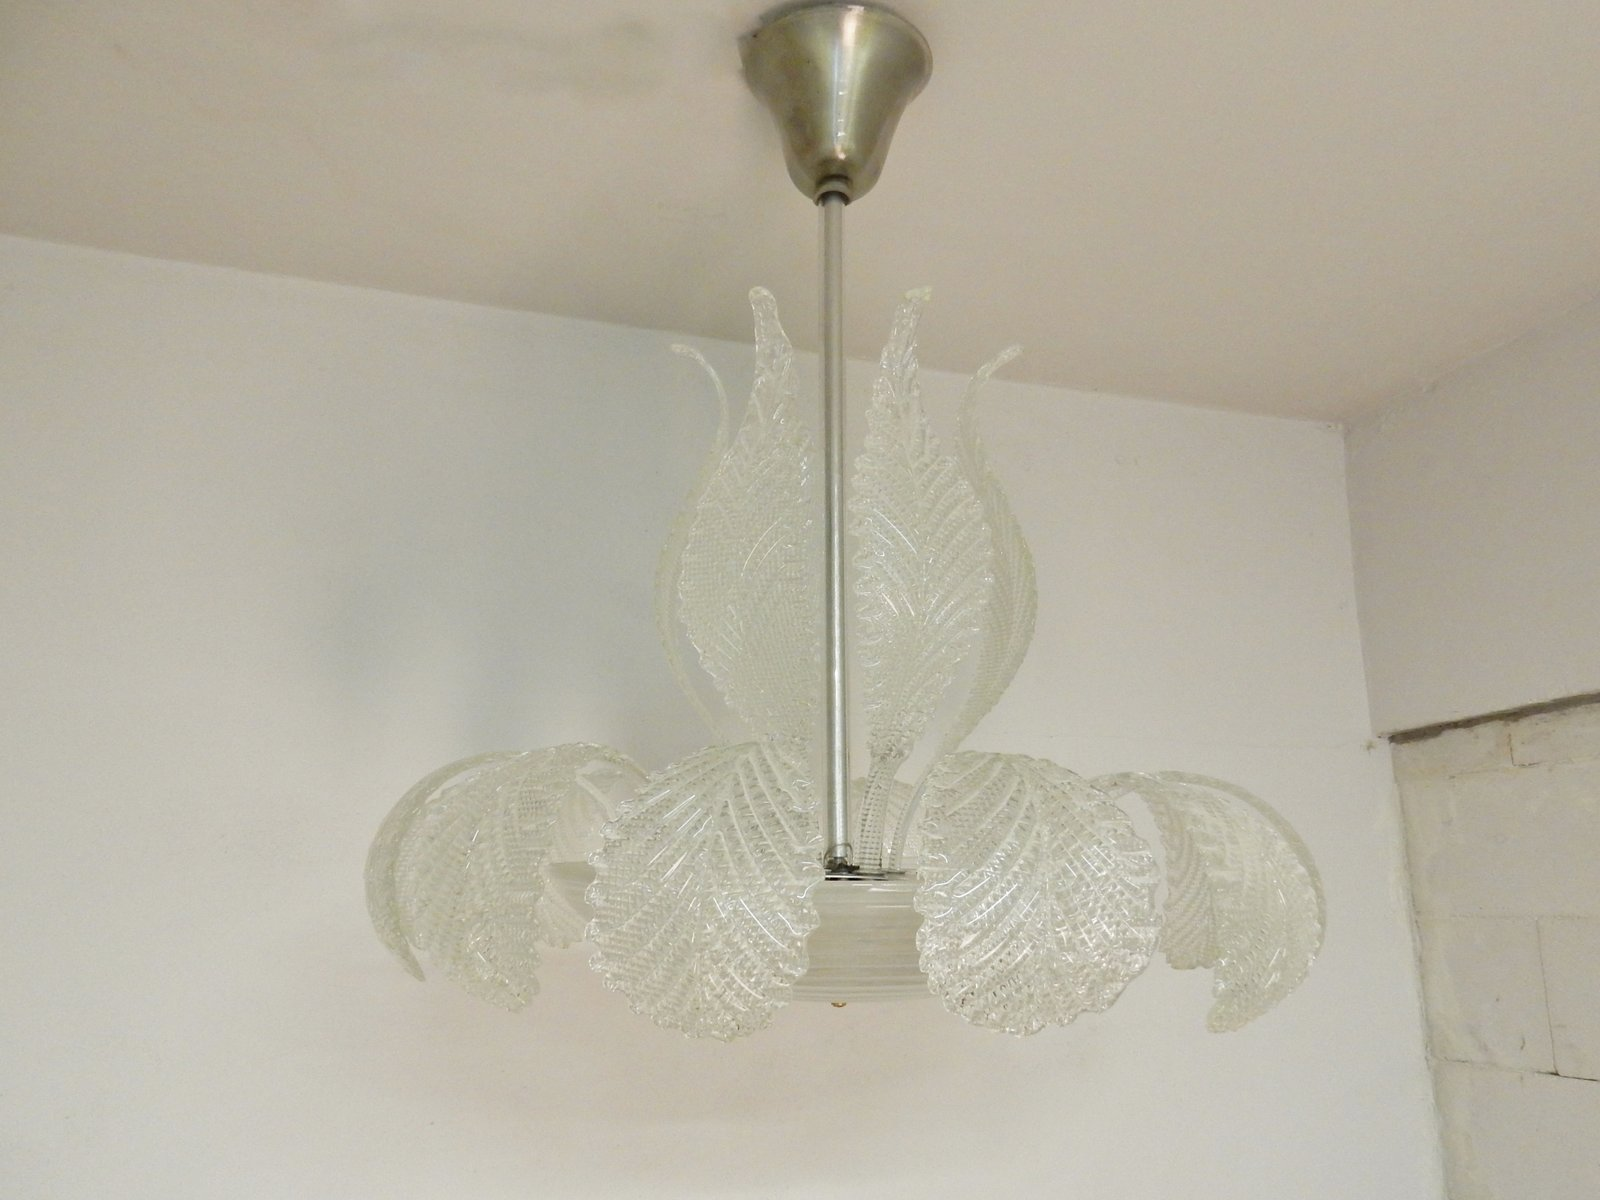 Glass leaf chandelier from barovier and toso 1970s for sale at pamono glass leaf chandelier from barovier and toso 1970s arubaitofo Choice Image